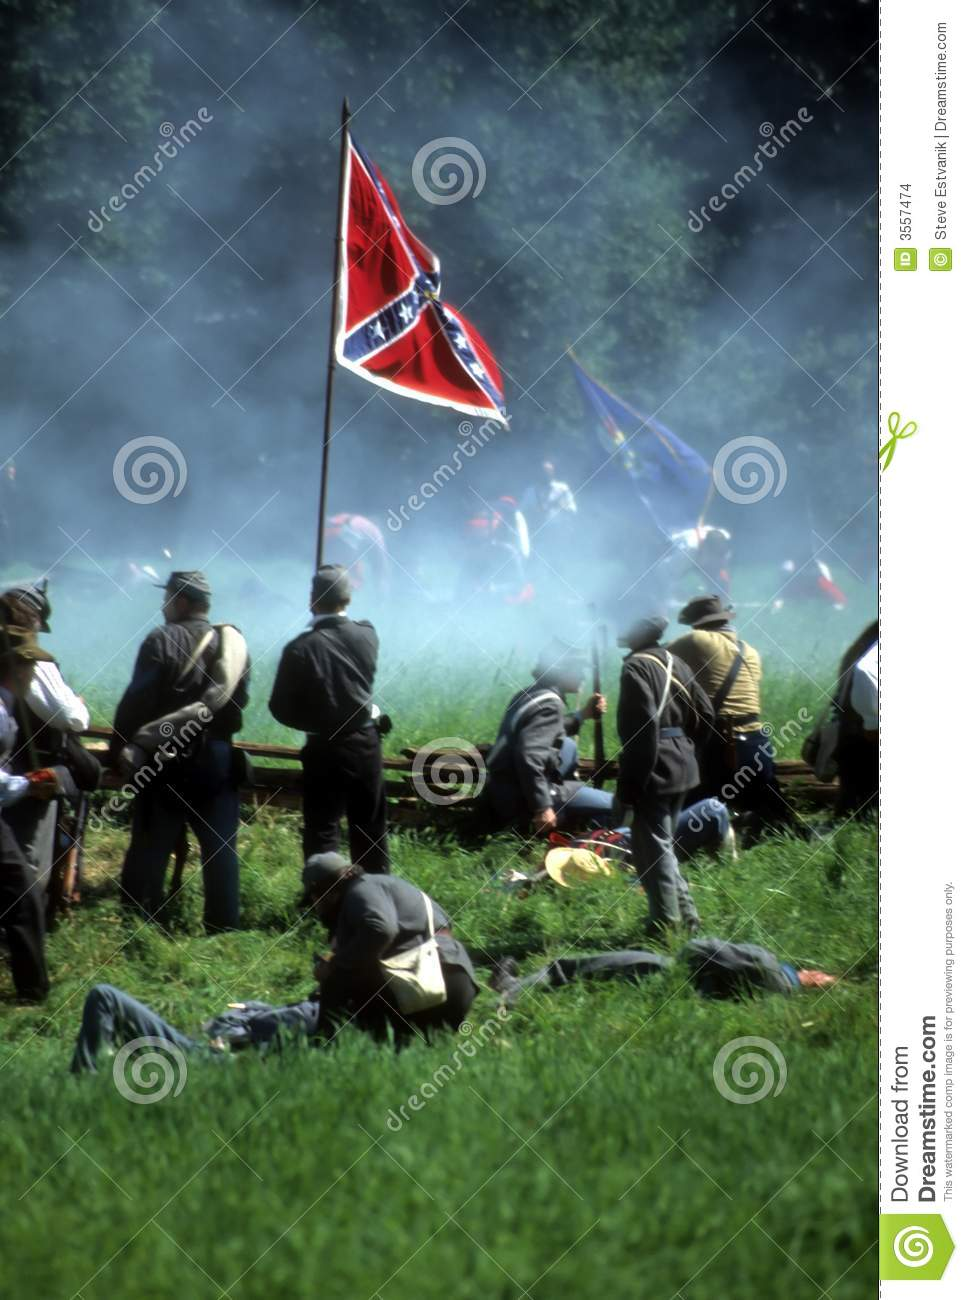 Confederates defend the flag